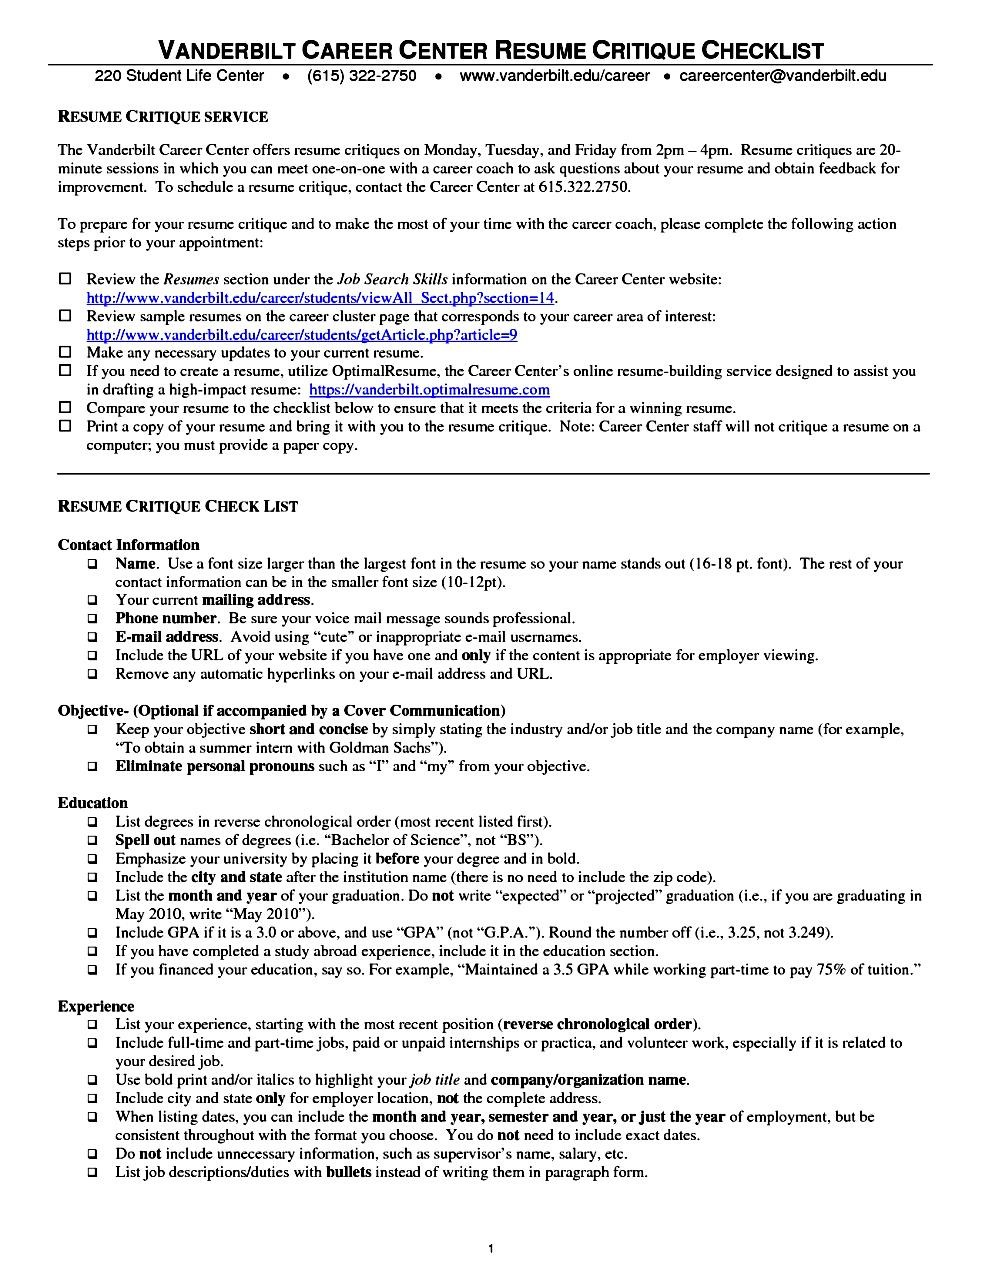 Academic-Resume-Template-For-Grad- Vanderbilt Curriculum Vitae on